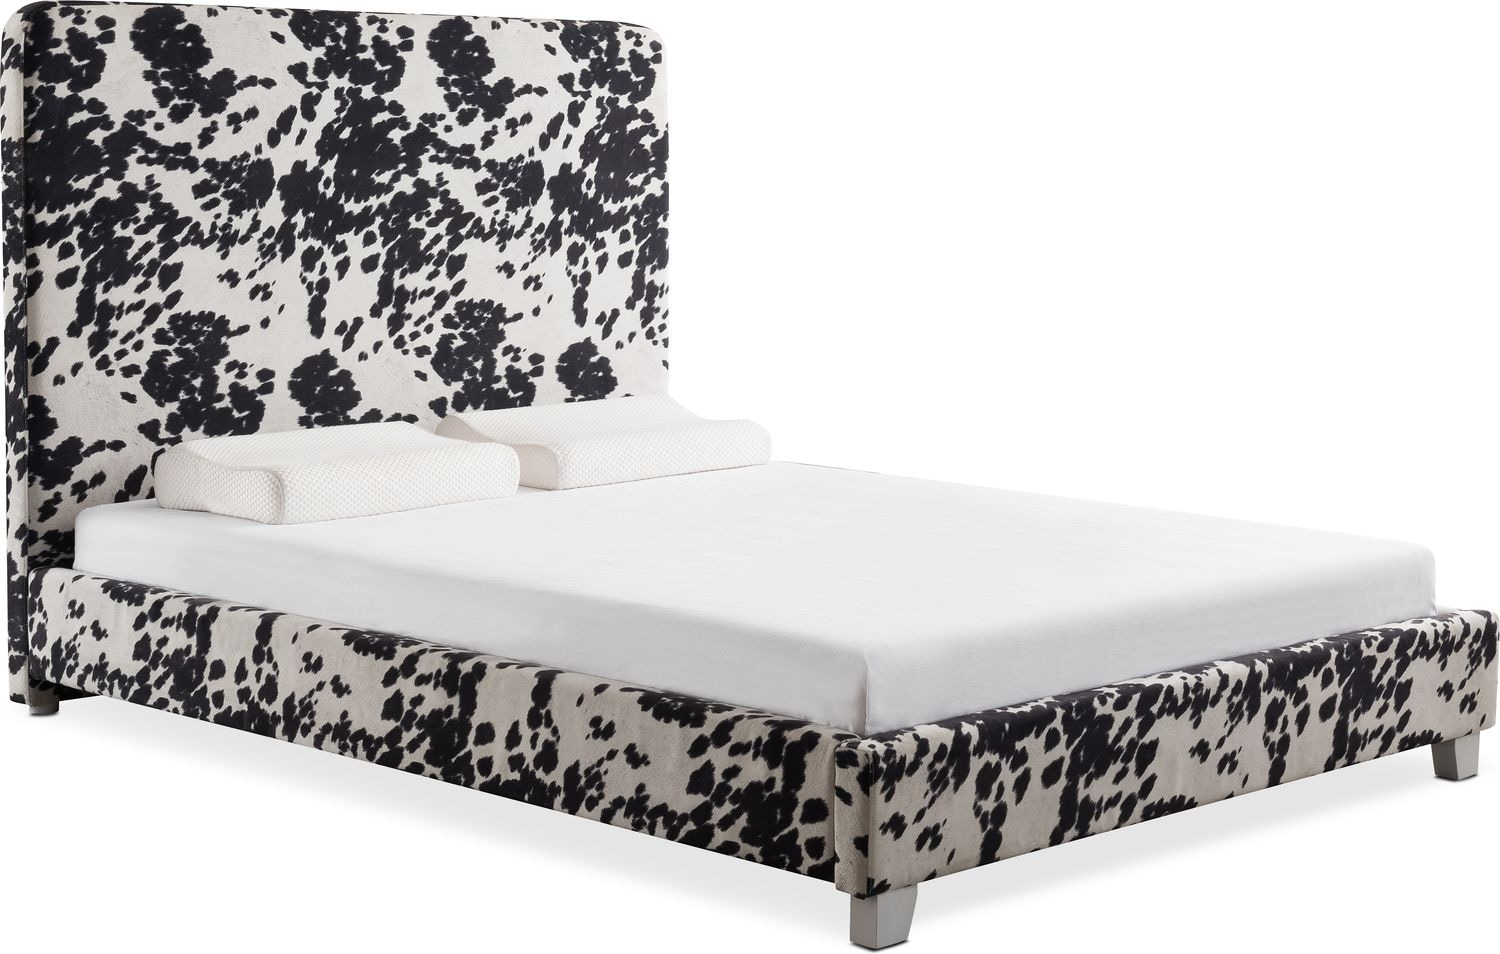 Jungle Queen Upholstered Bed   Black